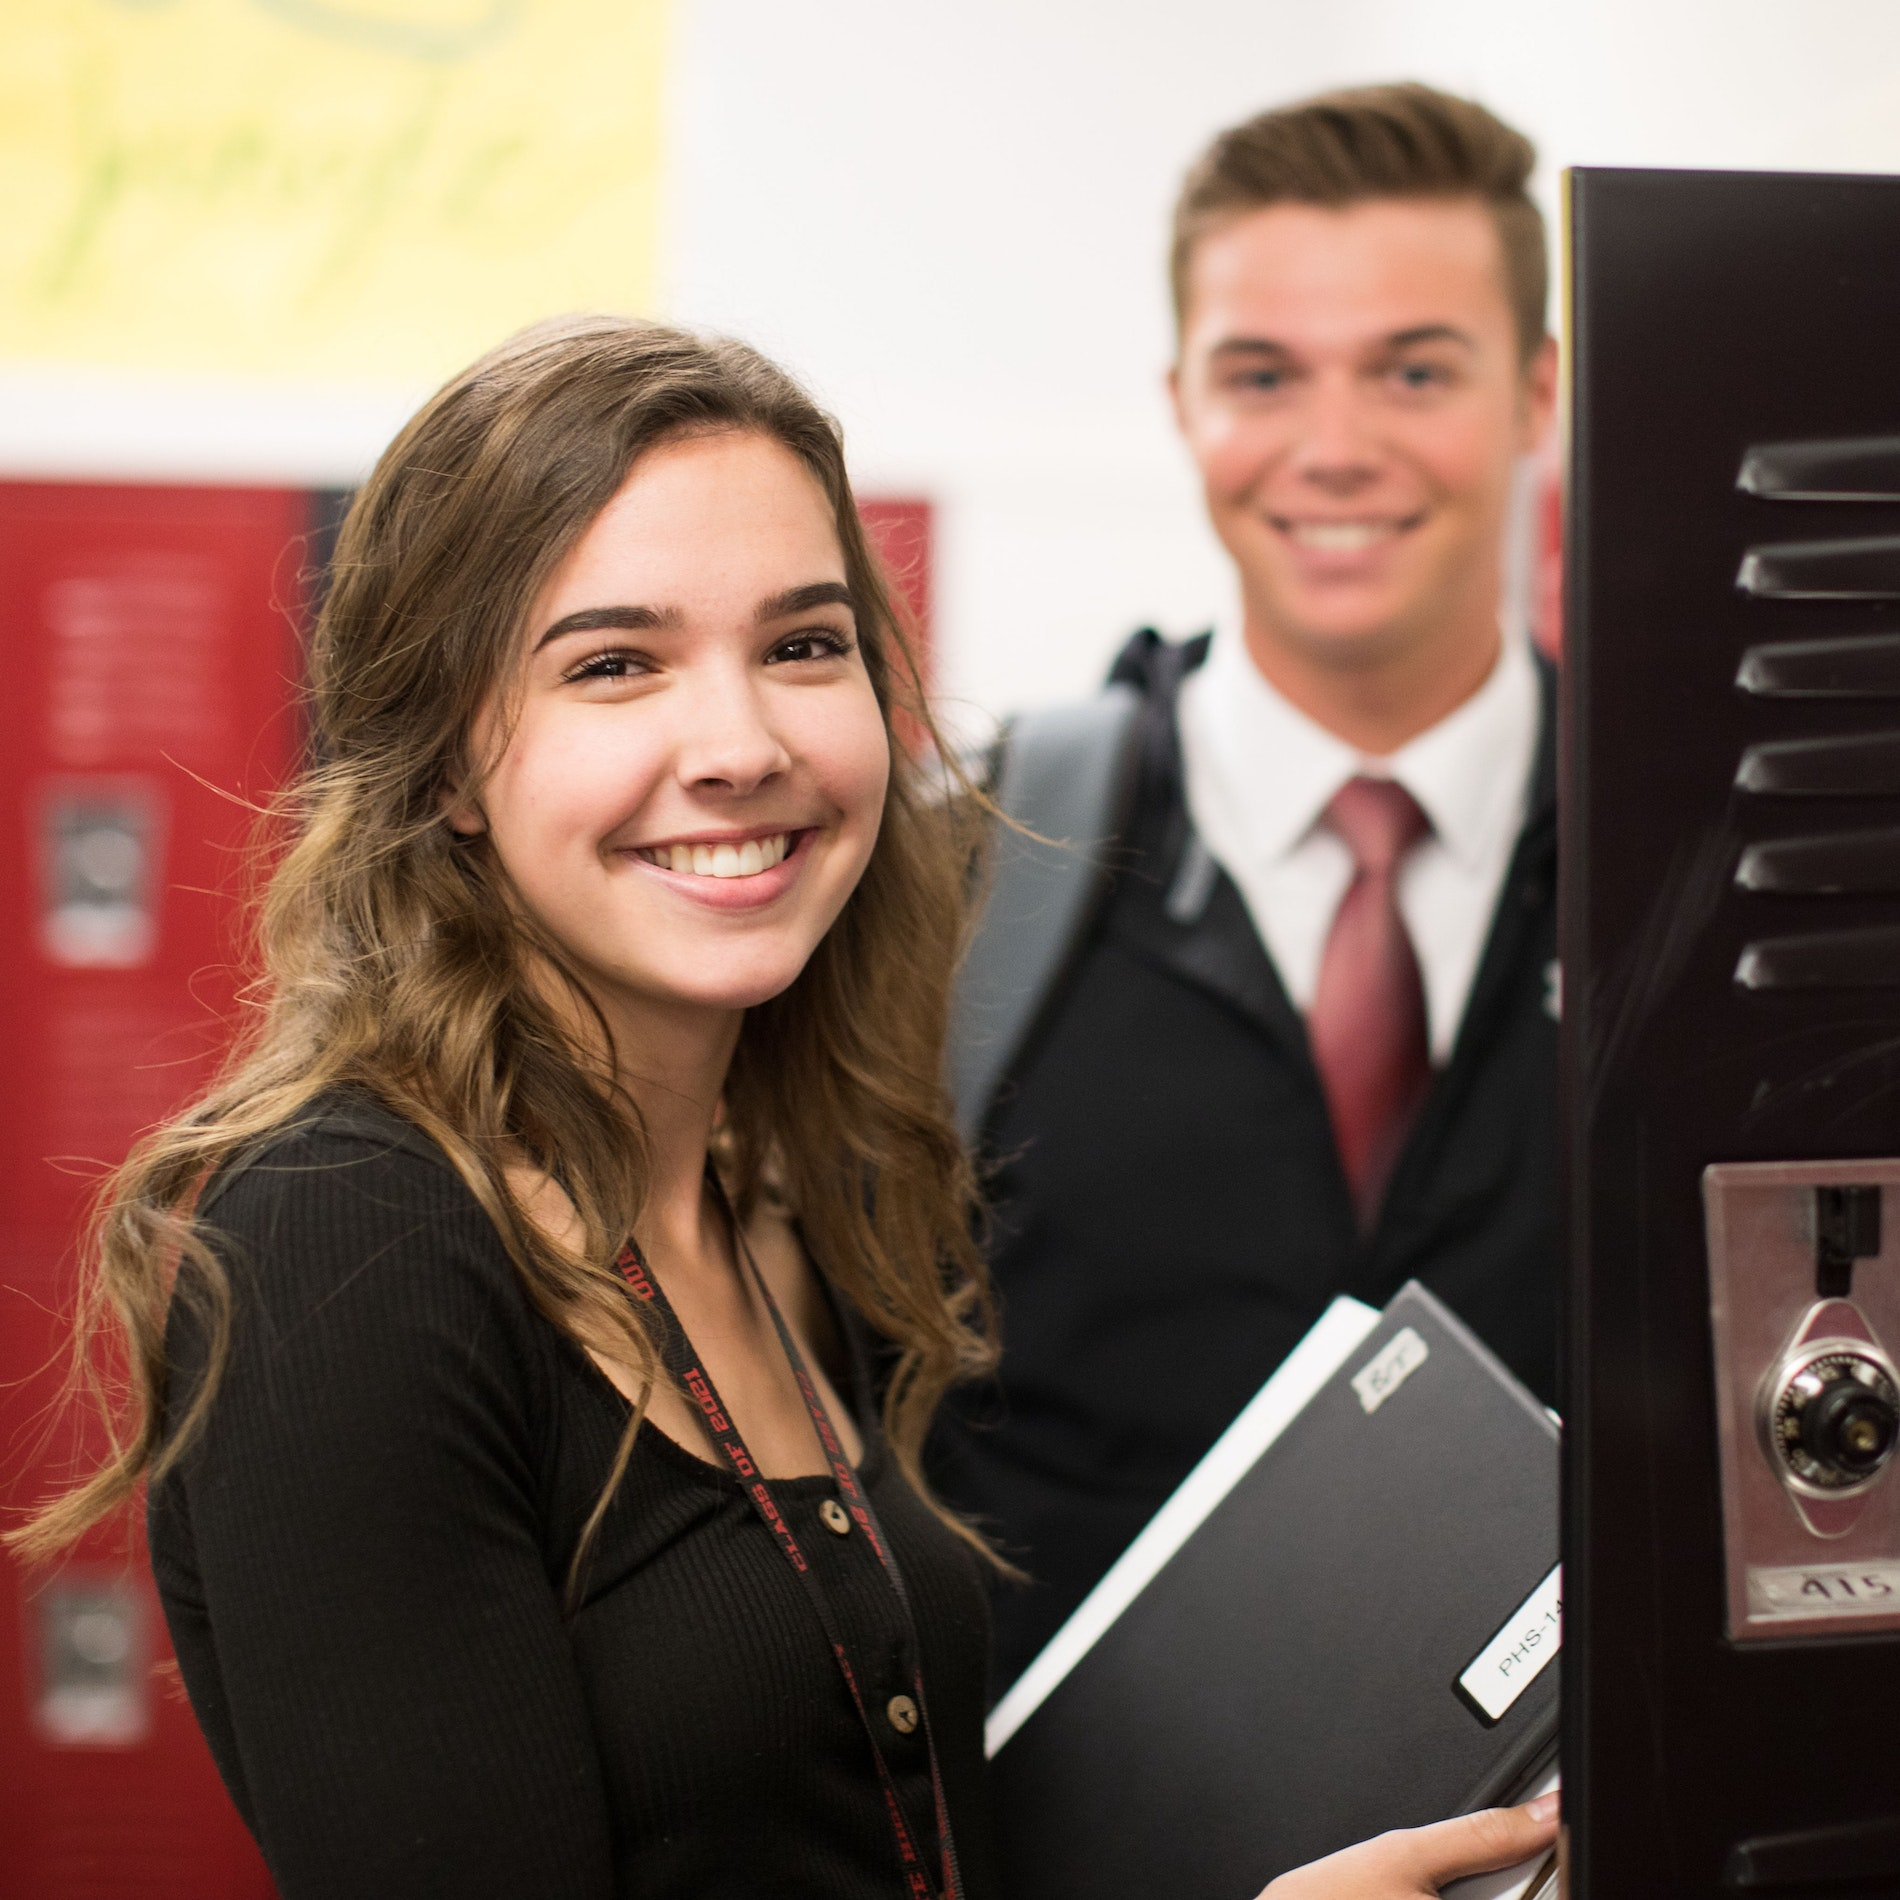 A female and a male student smiling by lockers.